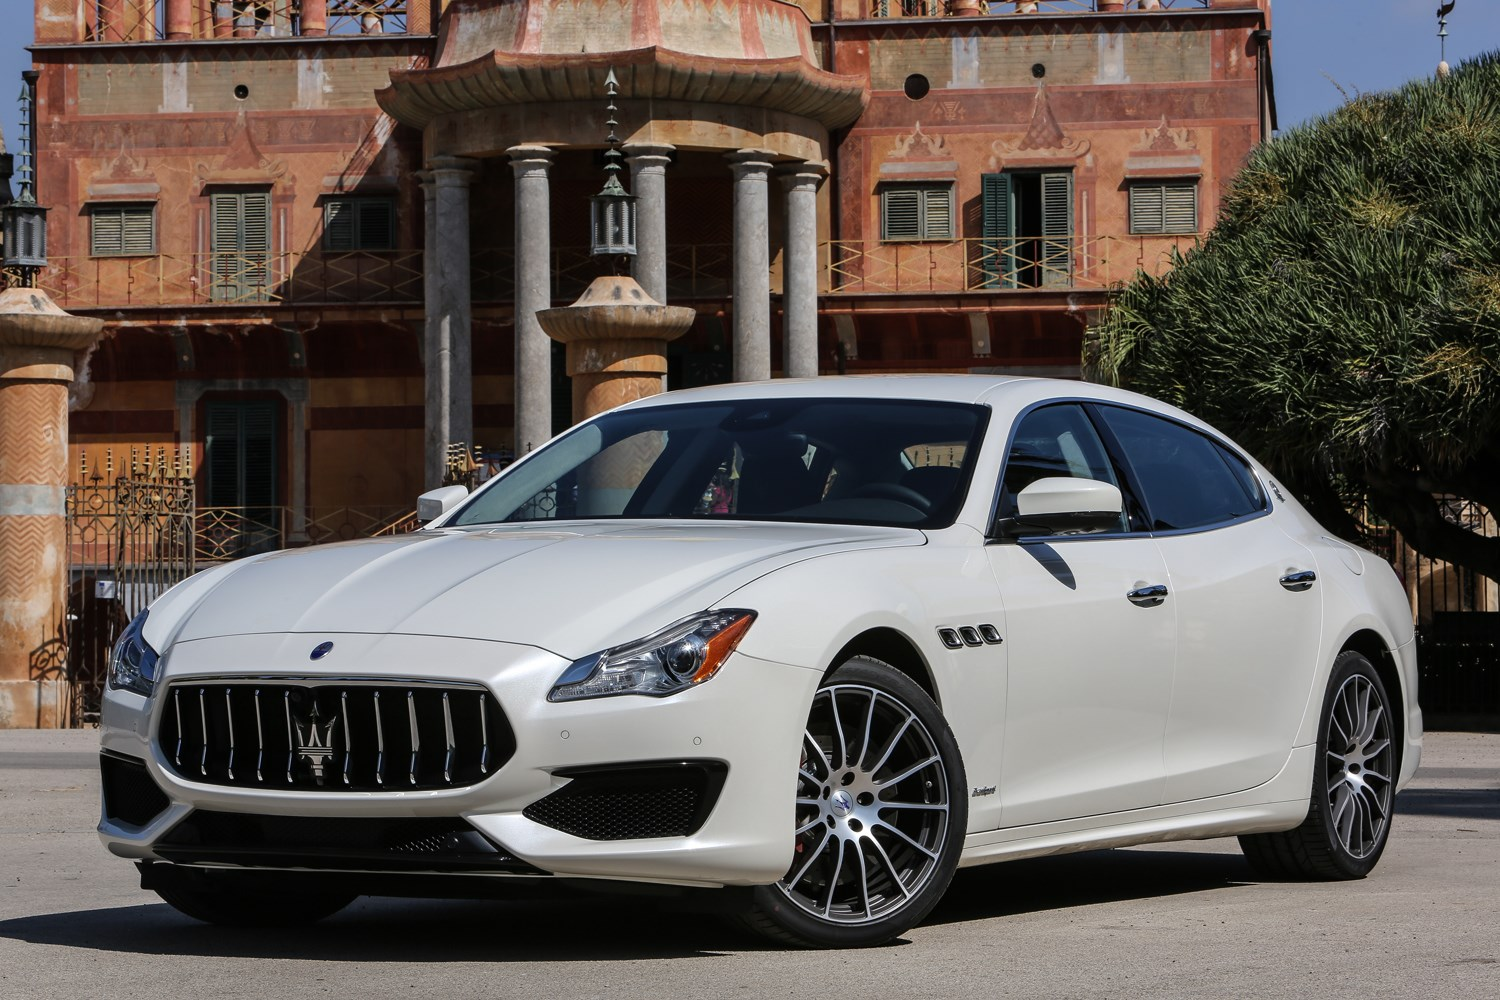 maserati quattroporte saloon review 2016 parkers. Black Bedroom Furniture Sets. Home Design Ideas